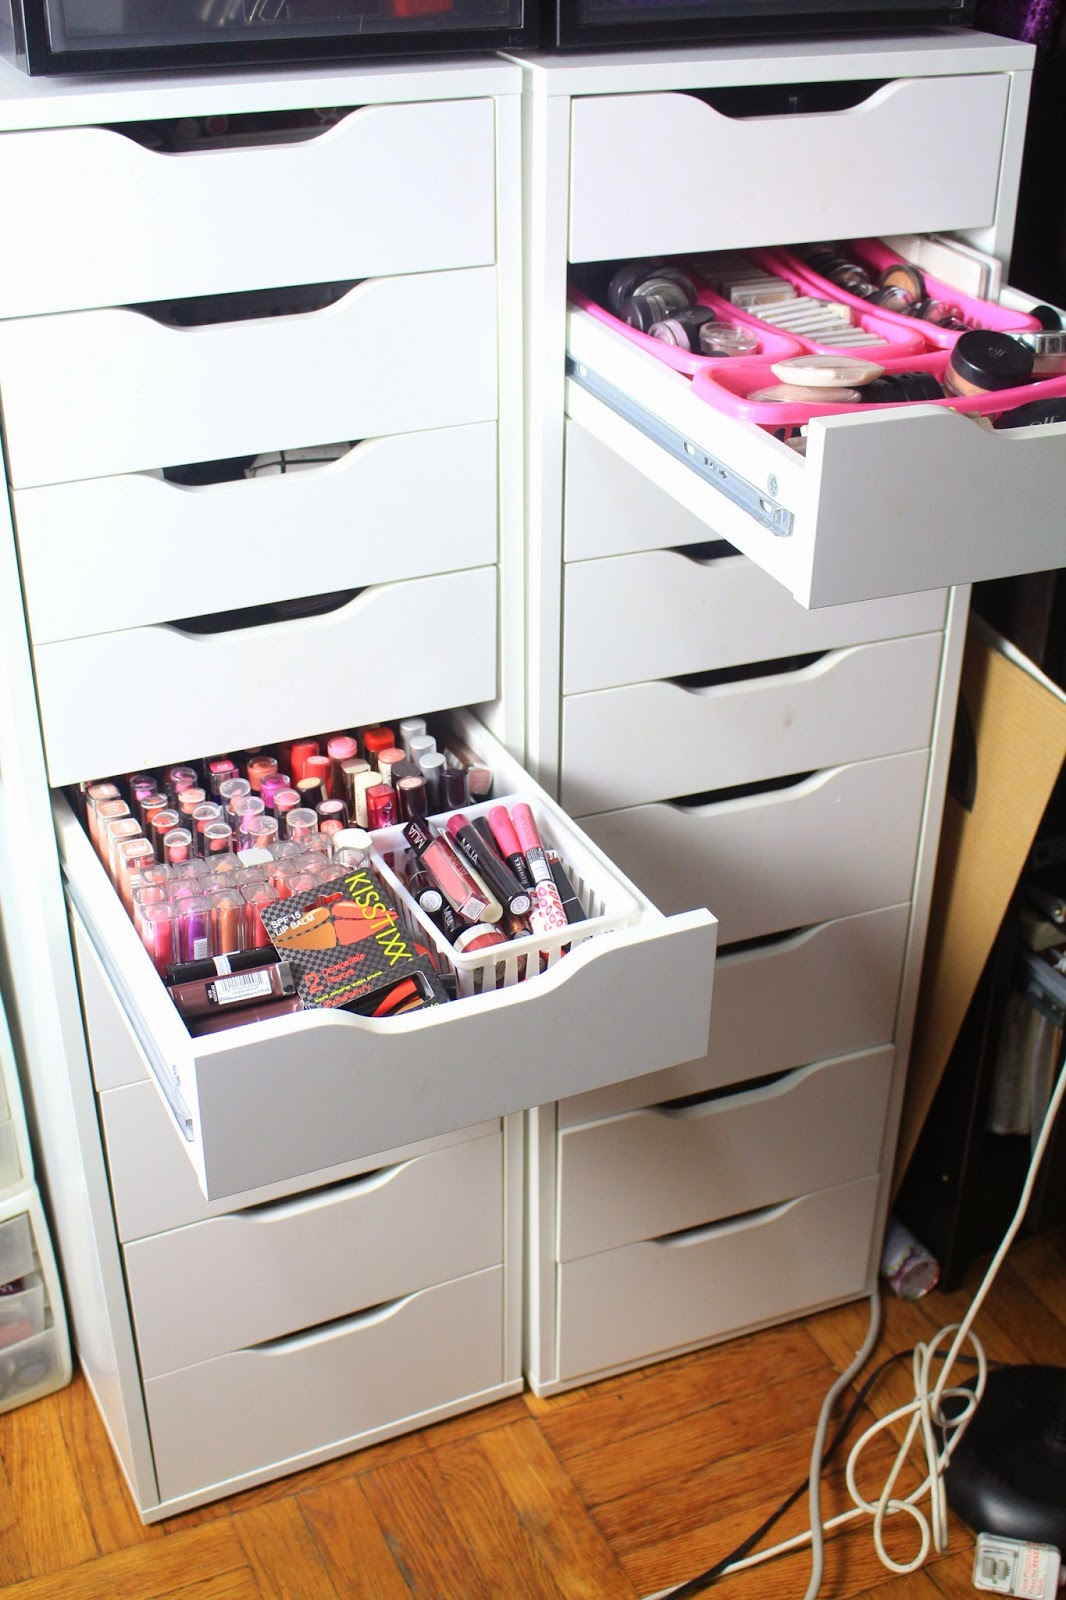 Diva Makeup Queen Diy Ikea Alex Drawers For Makeup: makeup drawer organizer ikea